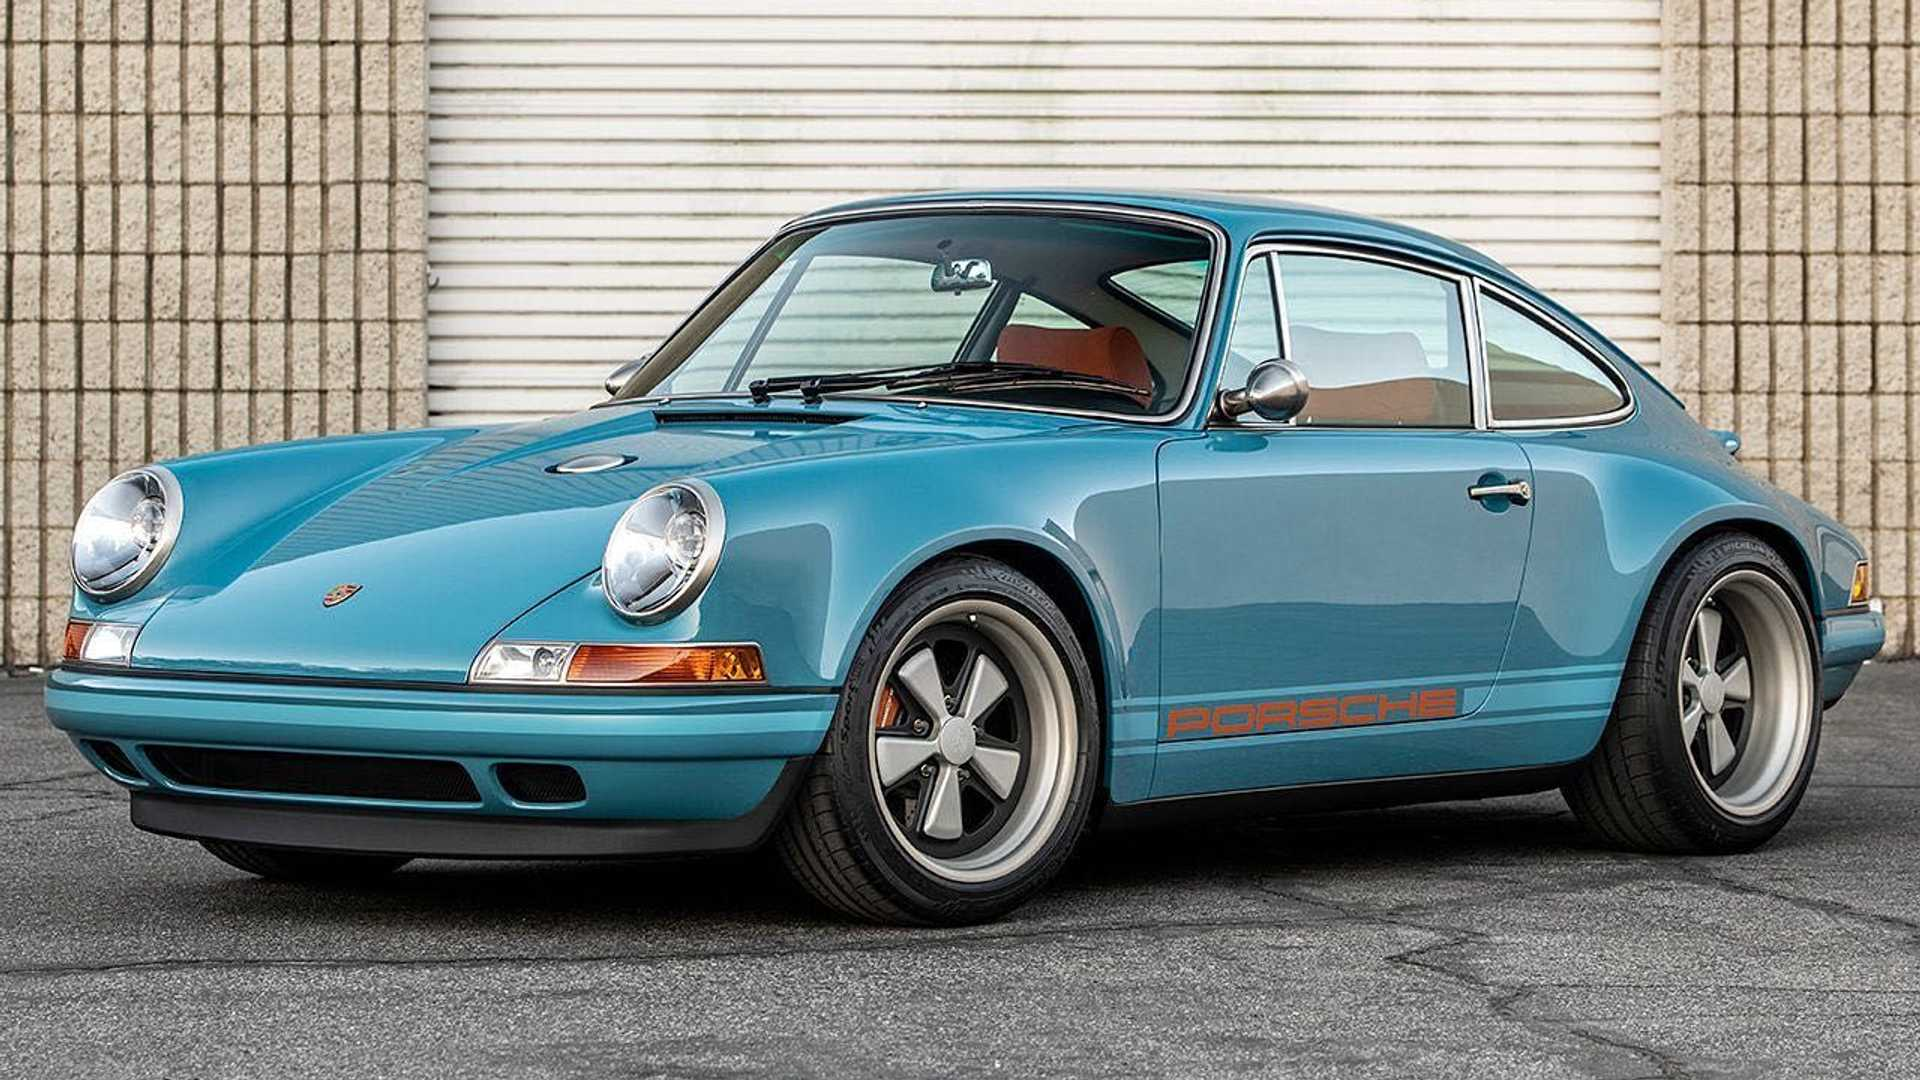 Classical car restorer Singer specializes in building ultra-deluxe Porsche restomods priced deep into six-digit USD territory, but this one looks different from most.